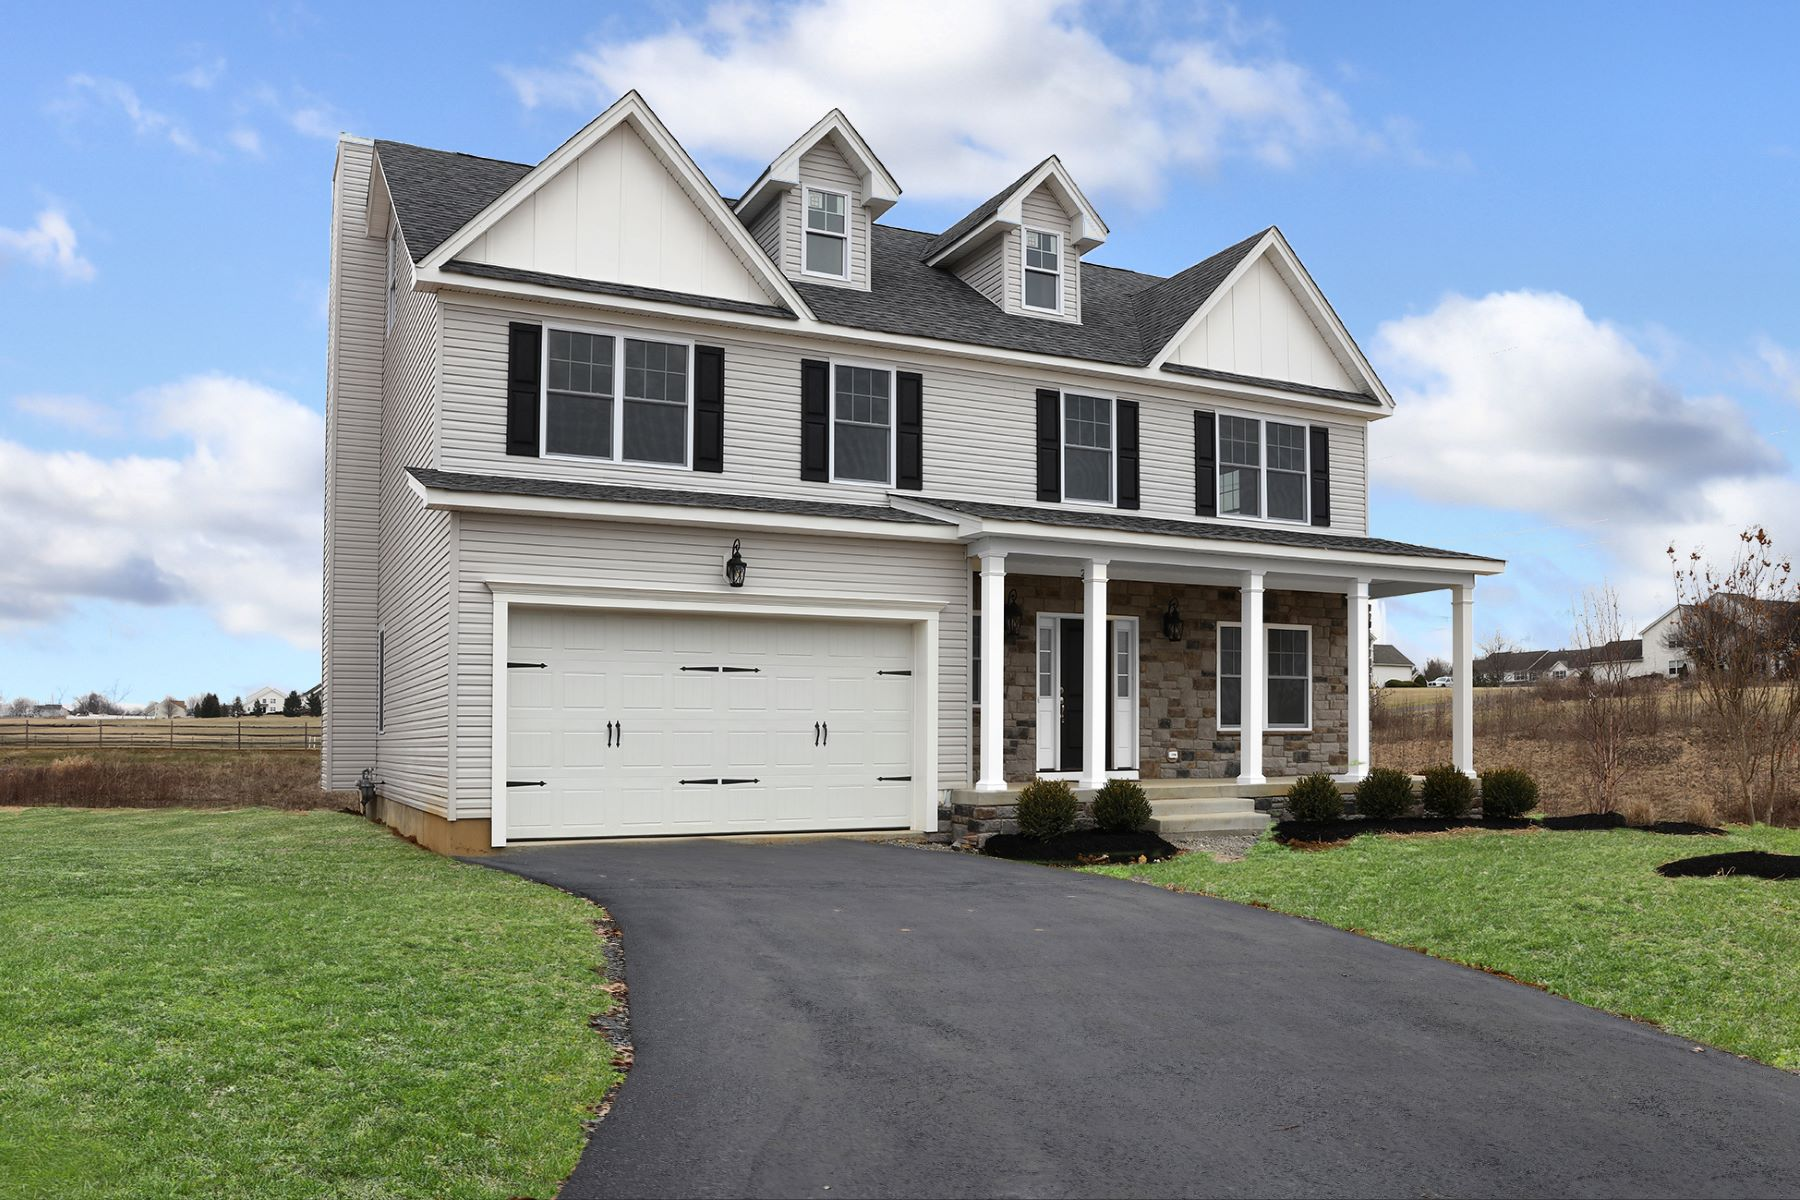 Additional photo for property listing at Expect Nothing But The Best 2435 Liberty Terrace Lot 5, Easton, Pennsylvania 18040 United States